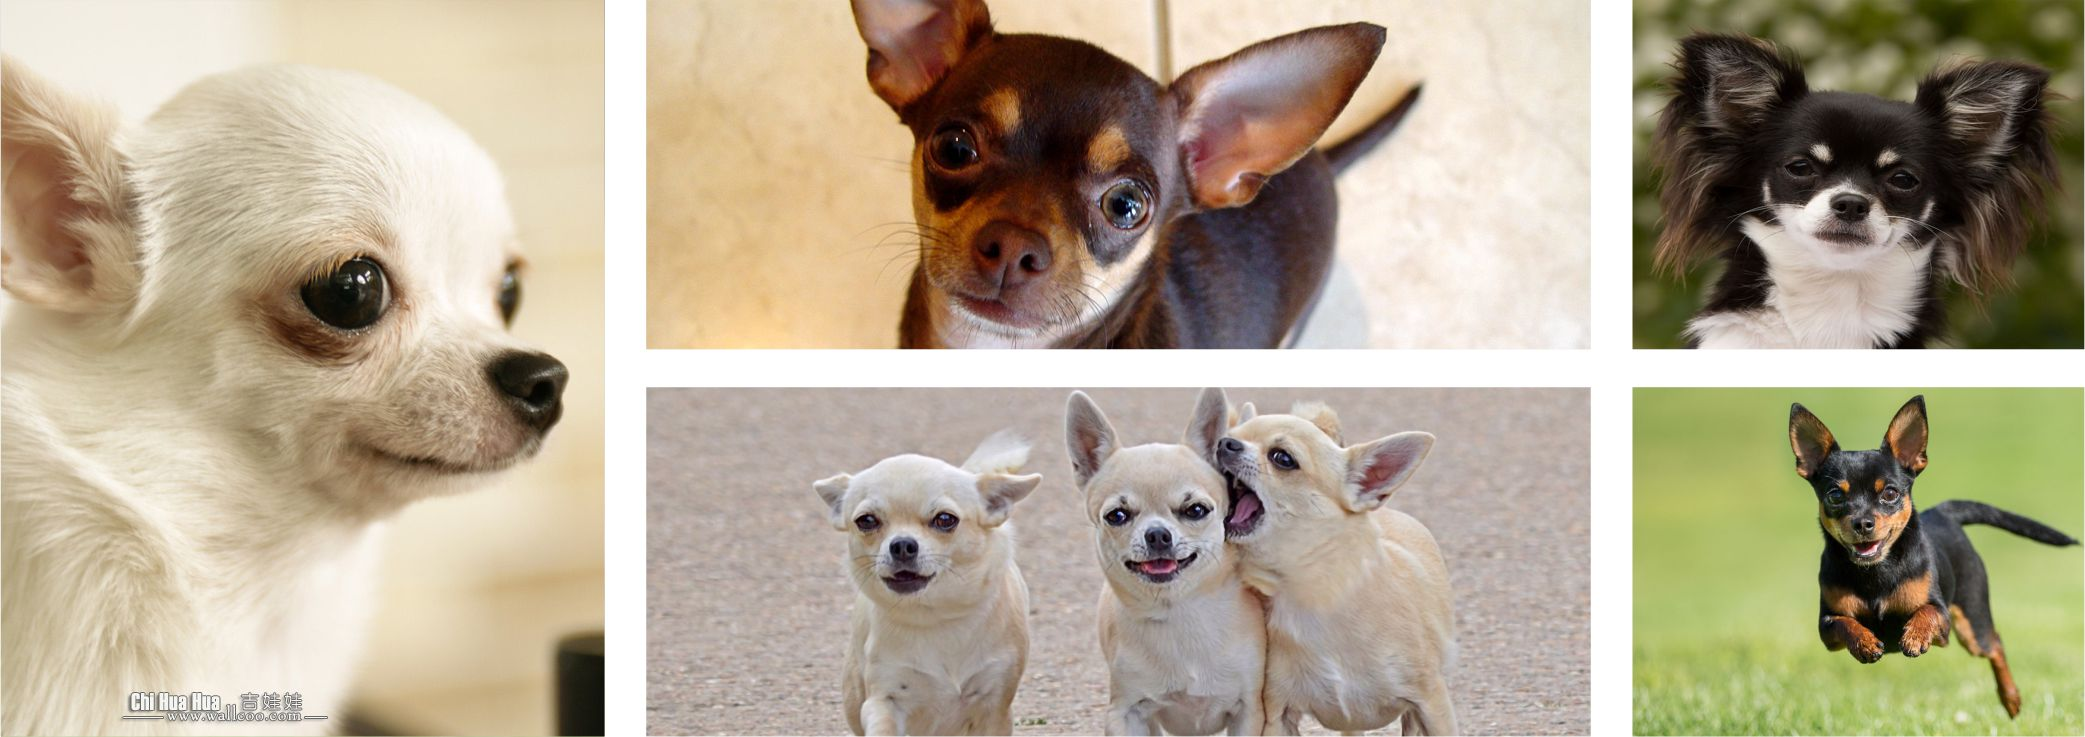 Cachorros Colombia - Chihuahua